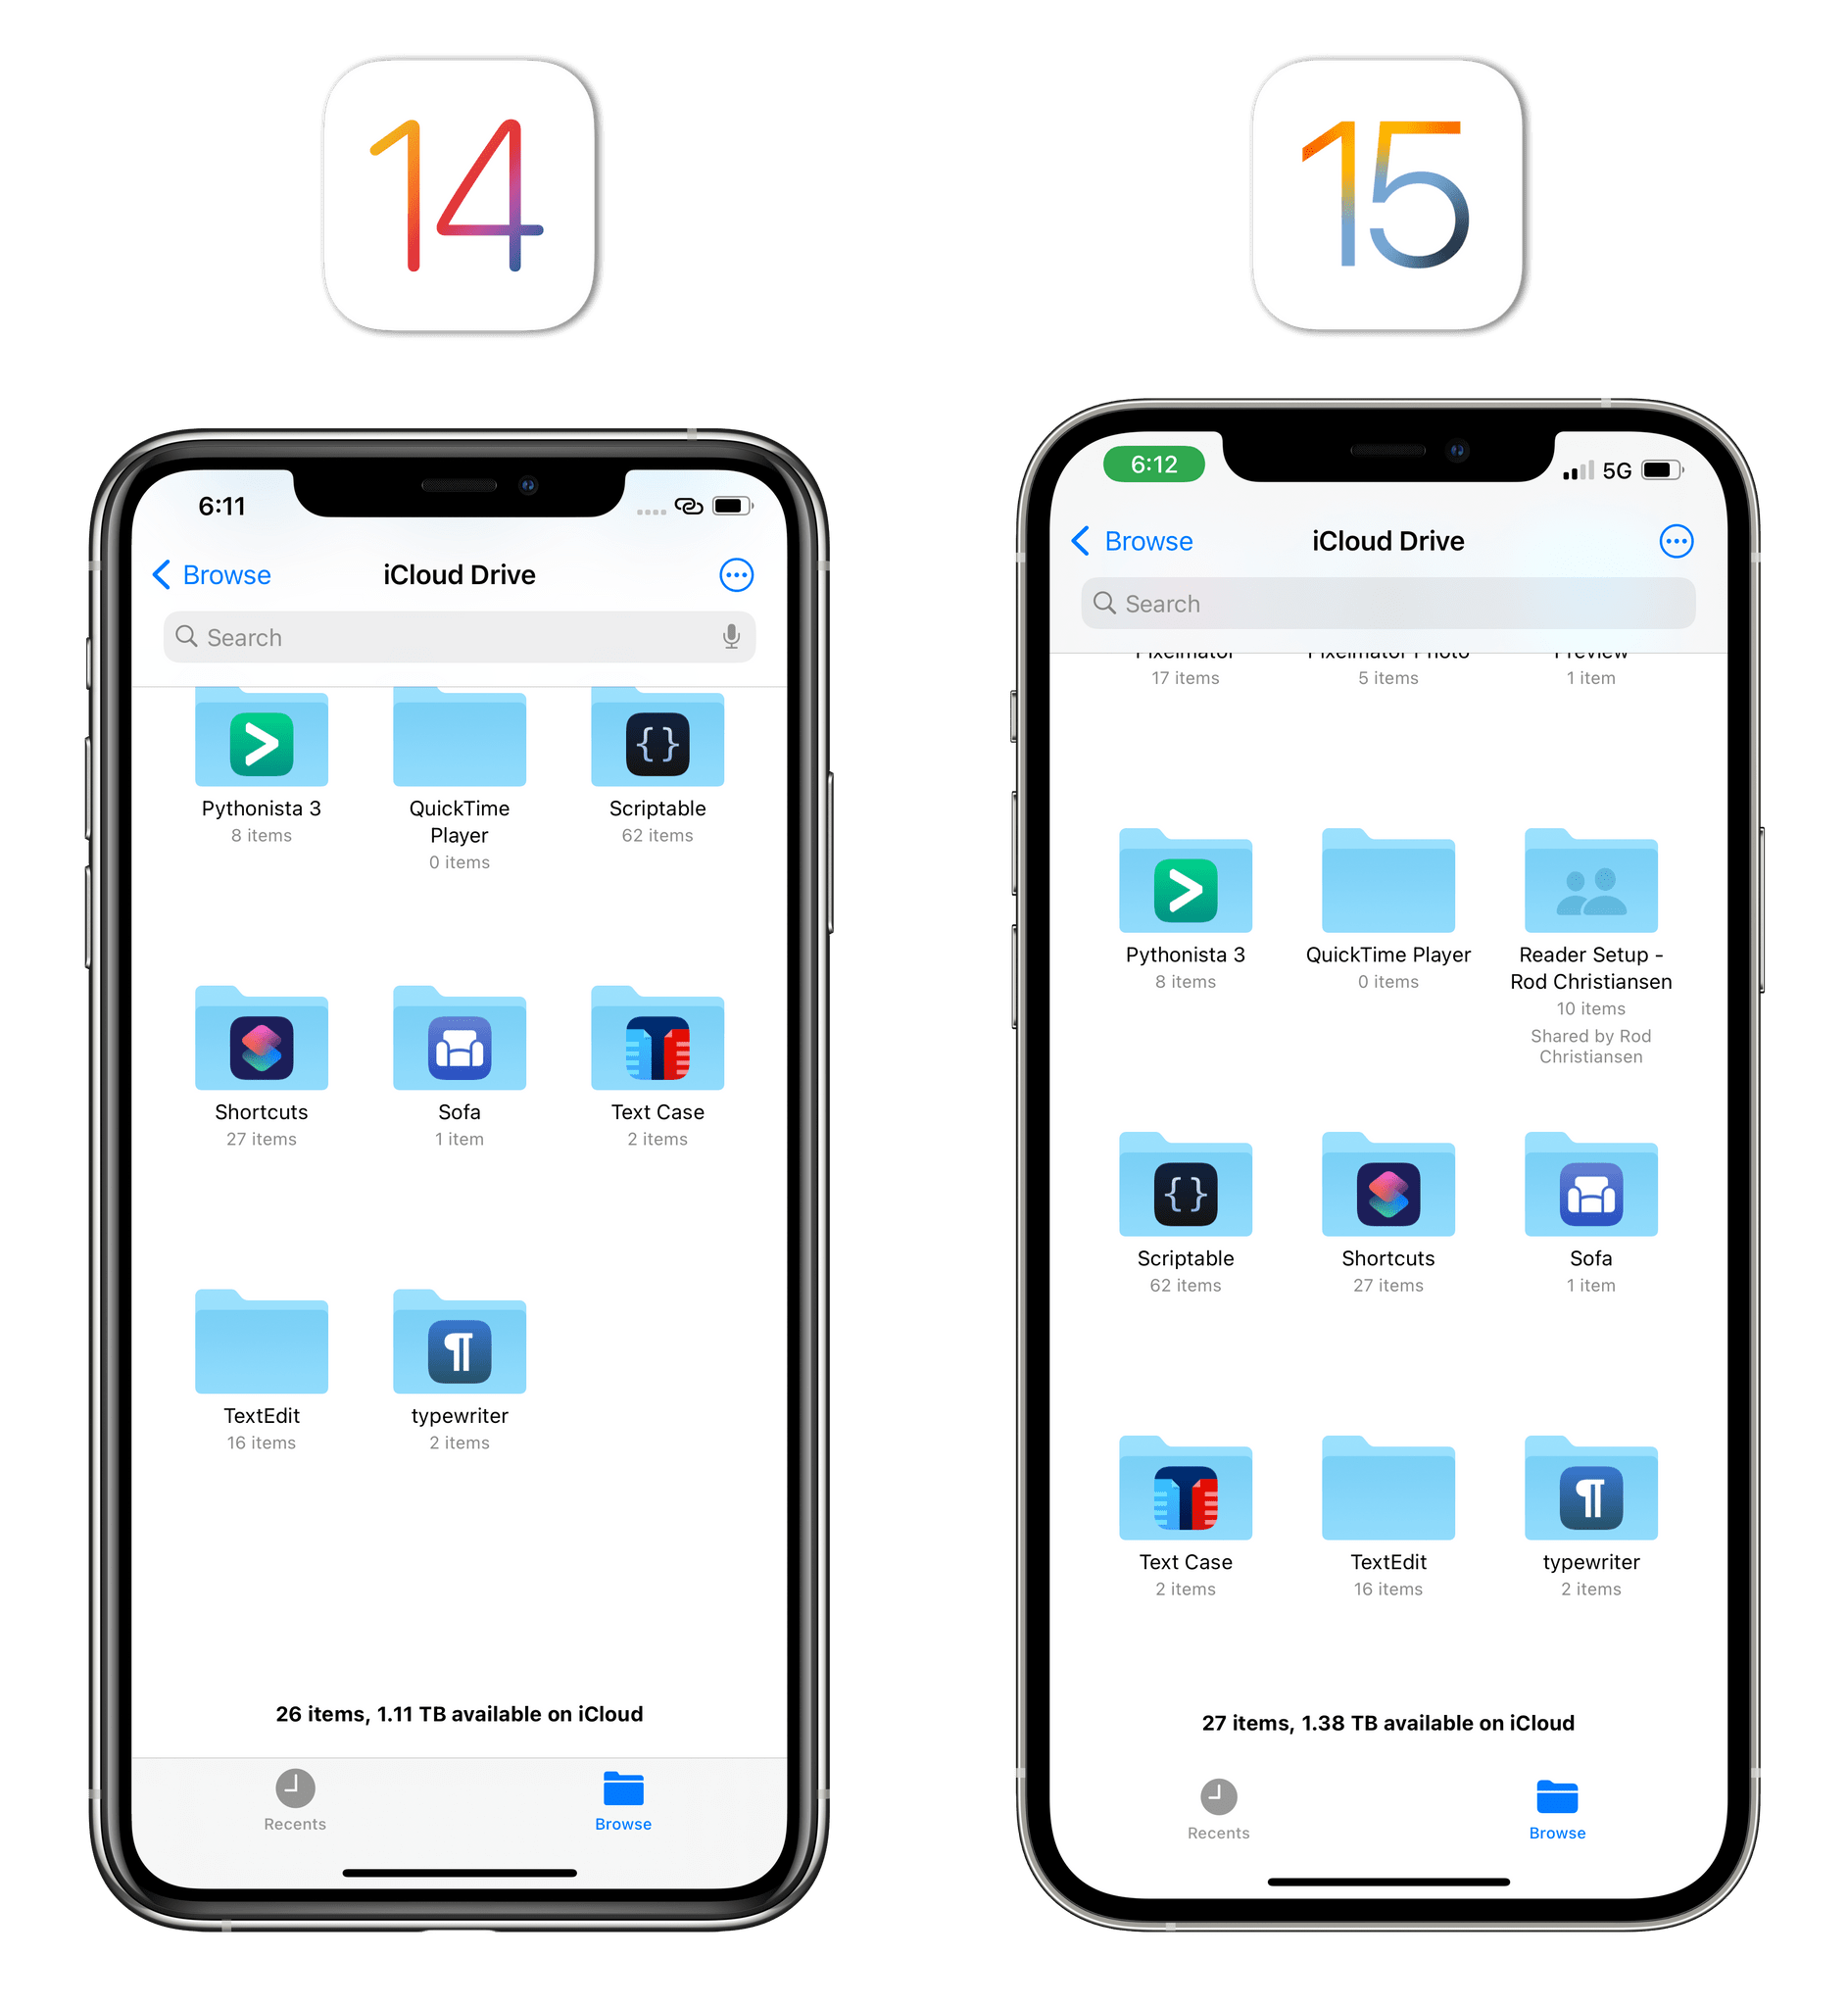 Toolbars are transparent in iOS 15 when content is scrolled all the way to the bottom.